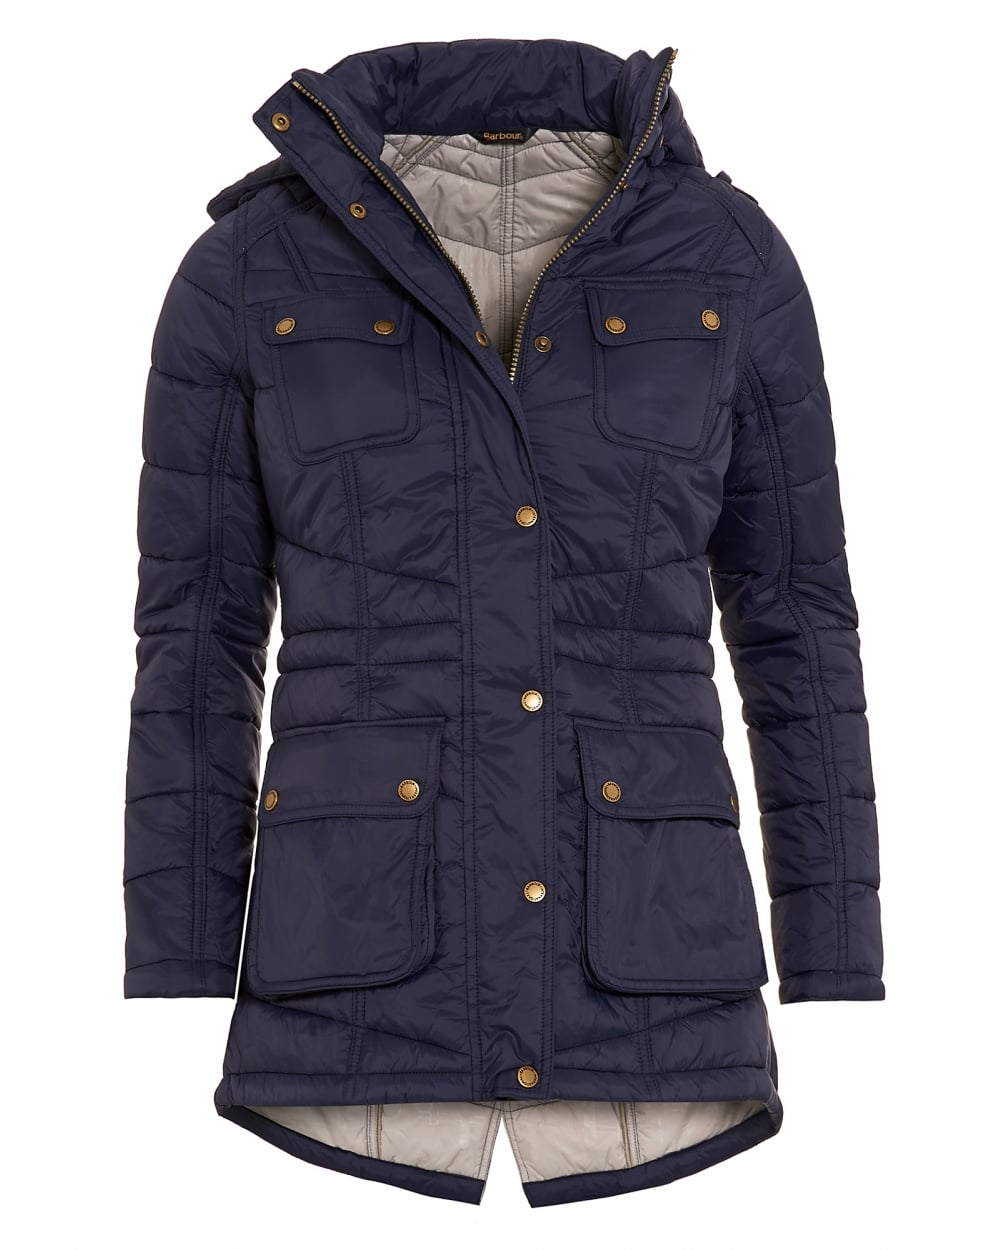 Blue leather gloves ladies uk - International Womens Circlip Quilted Jacket Navy Blue Chevron Coat